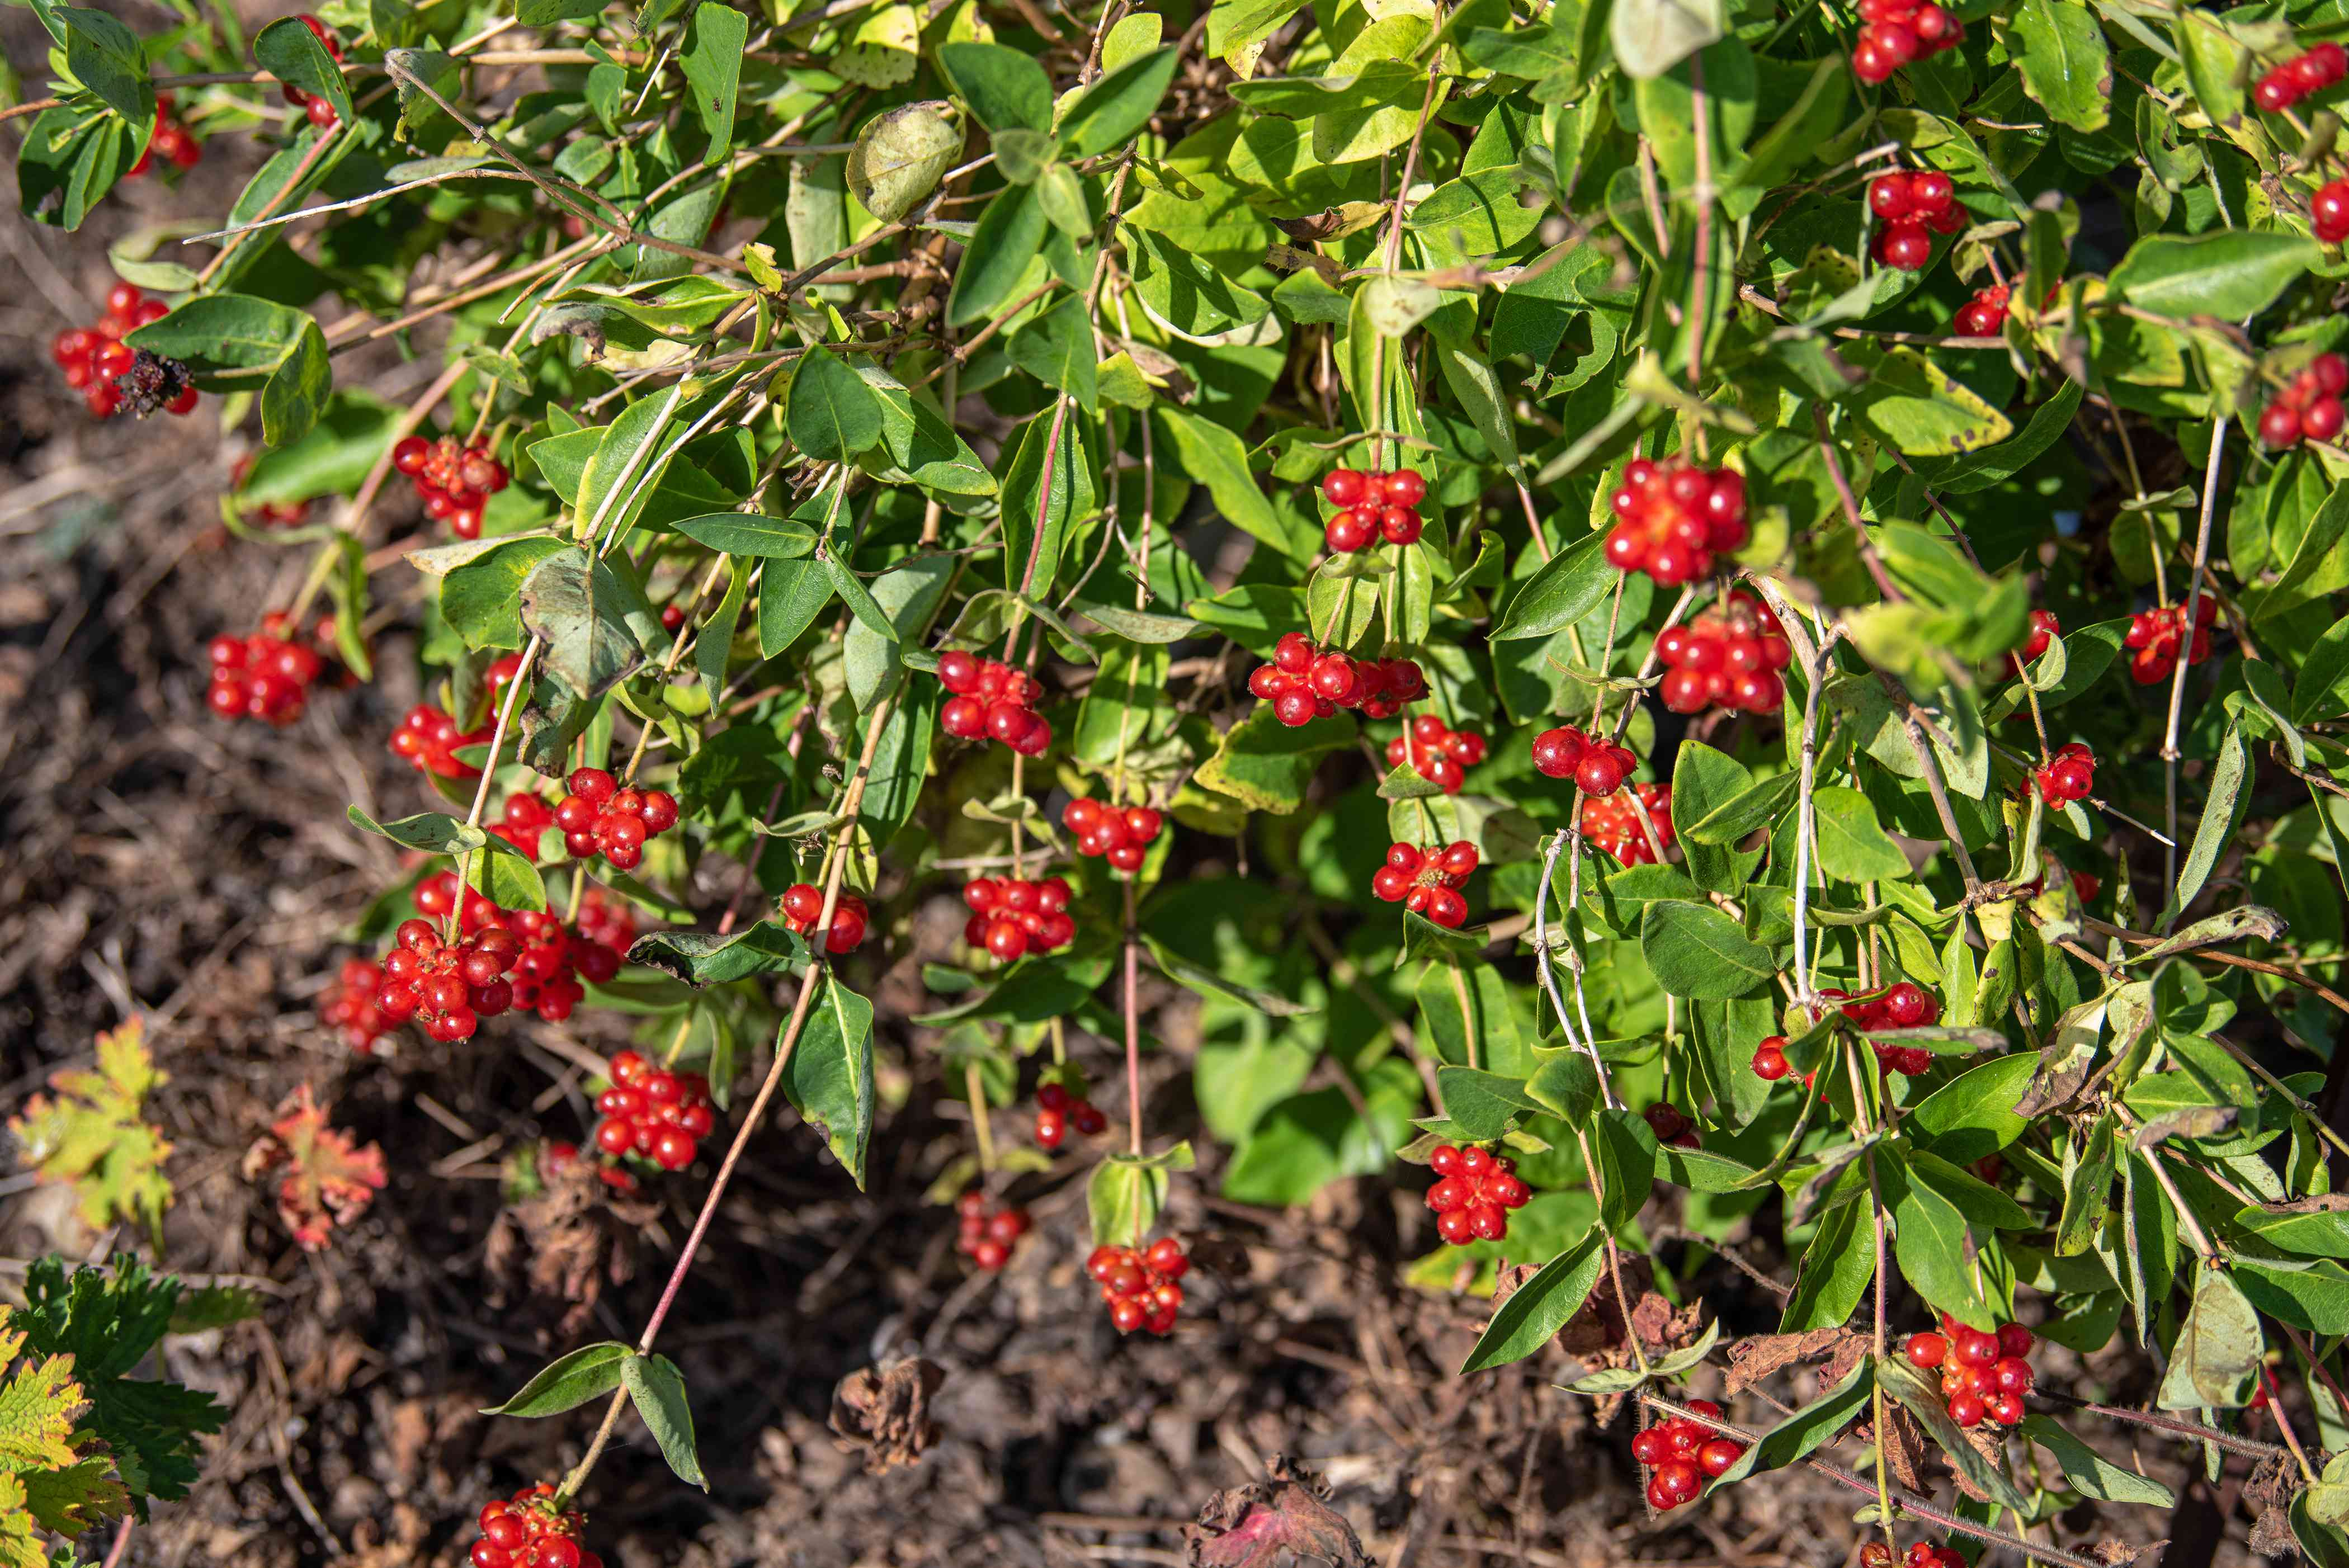 Common honeysuckle plant with vine-like stems and red berry clusters with leaves